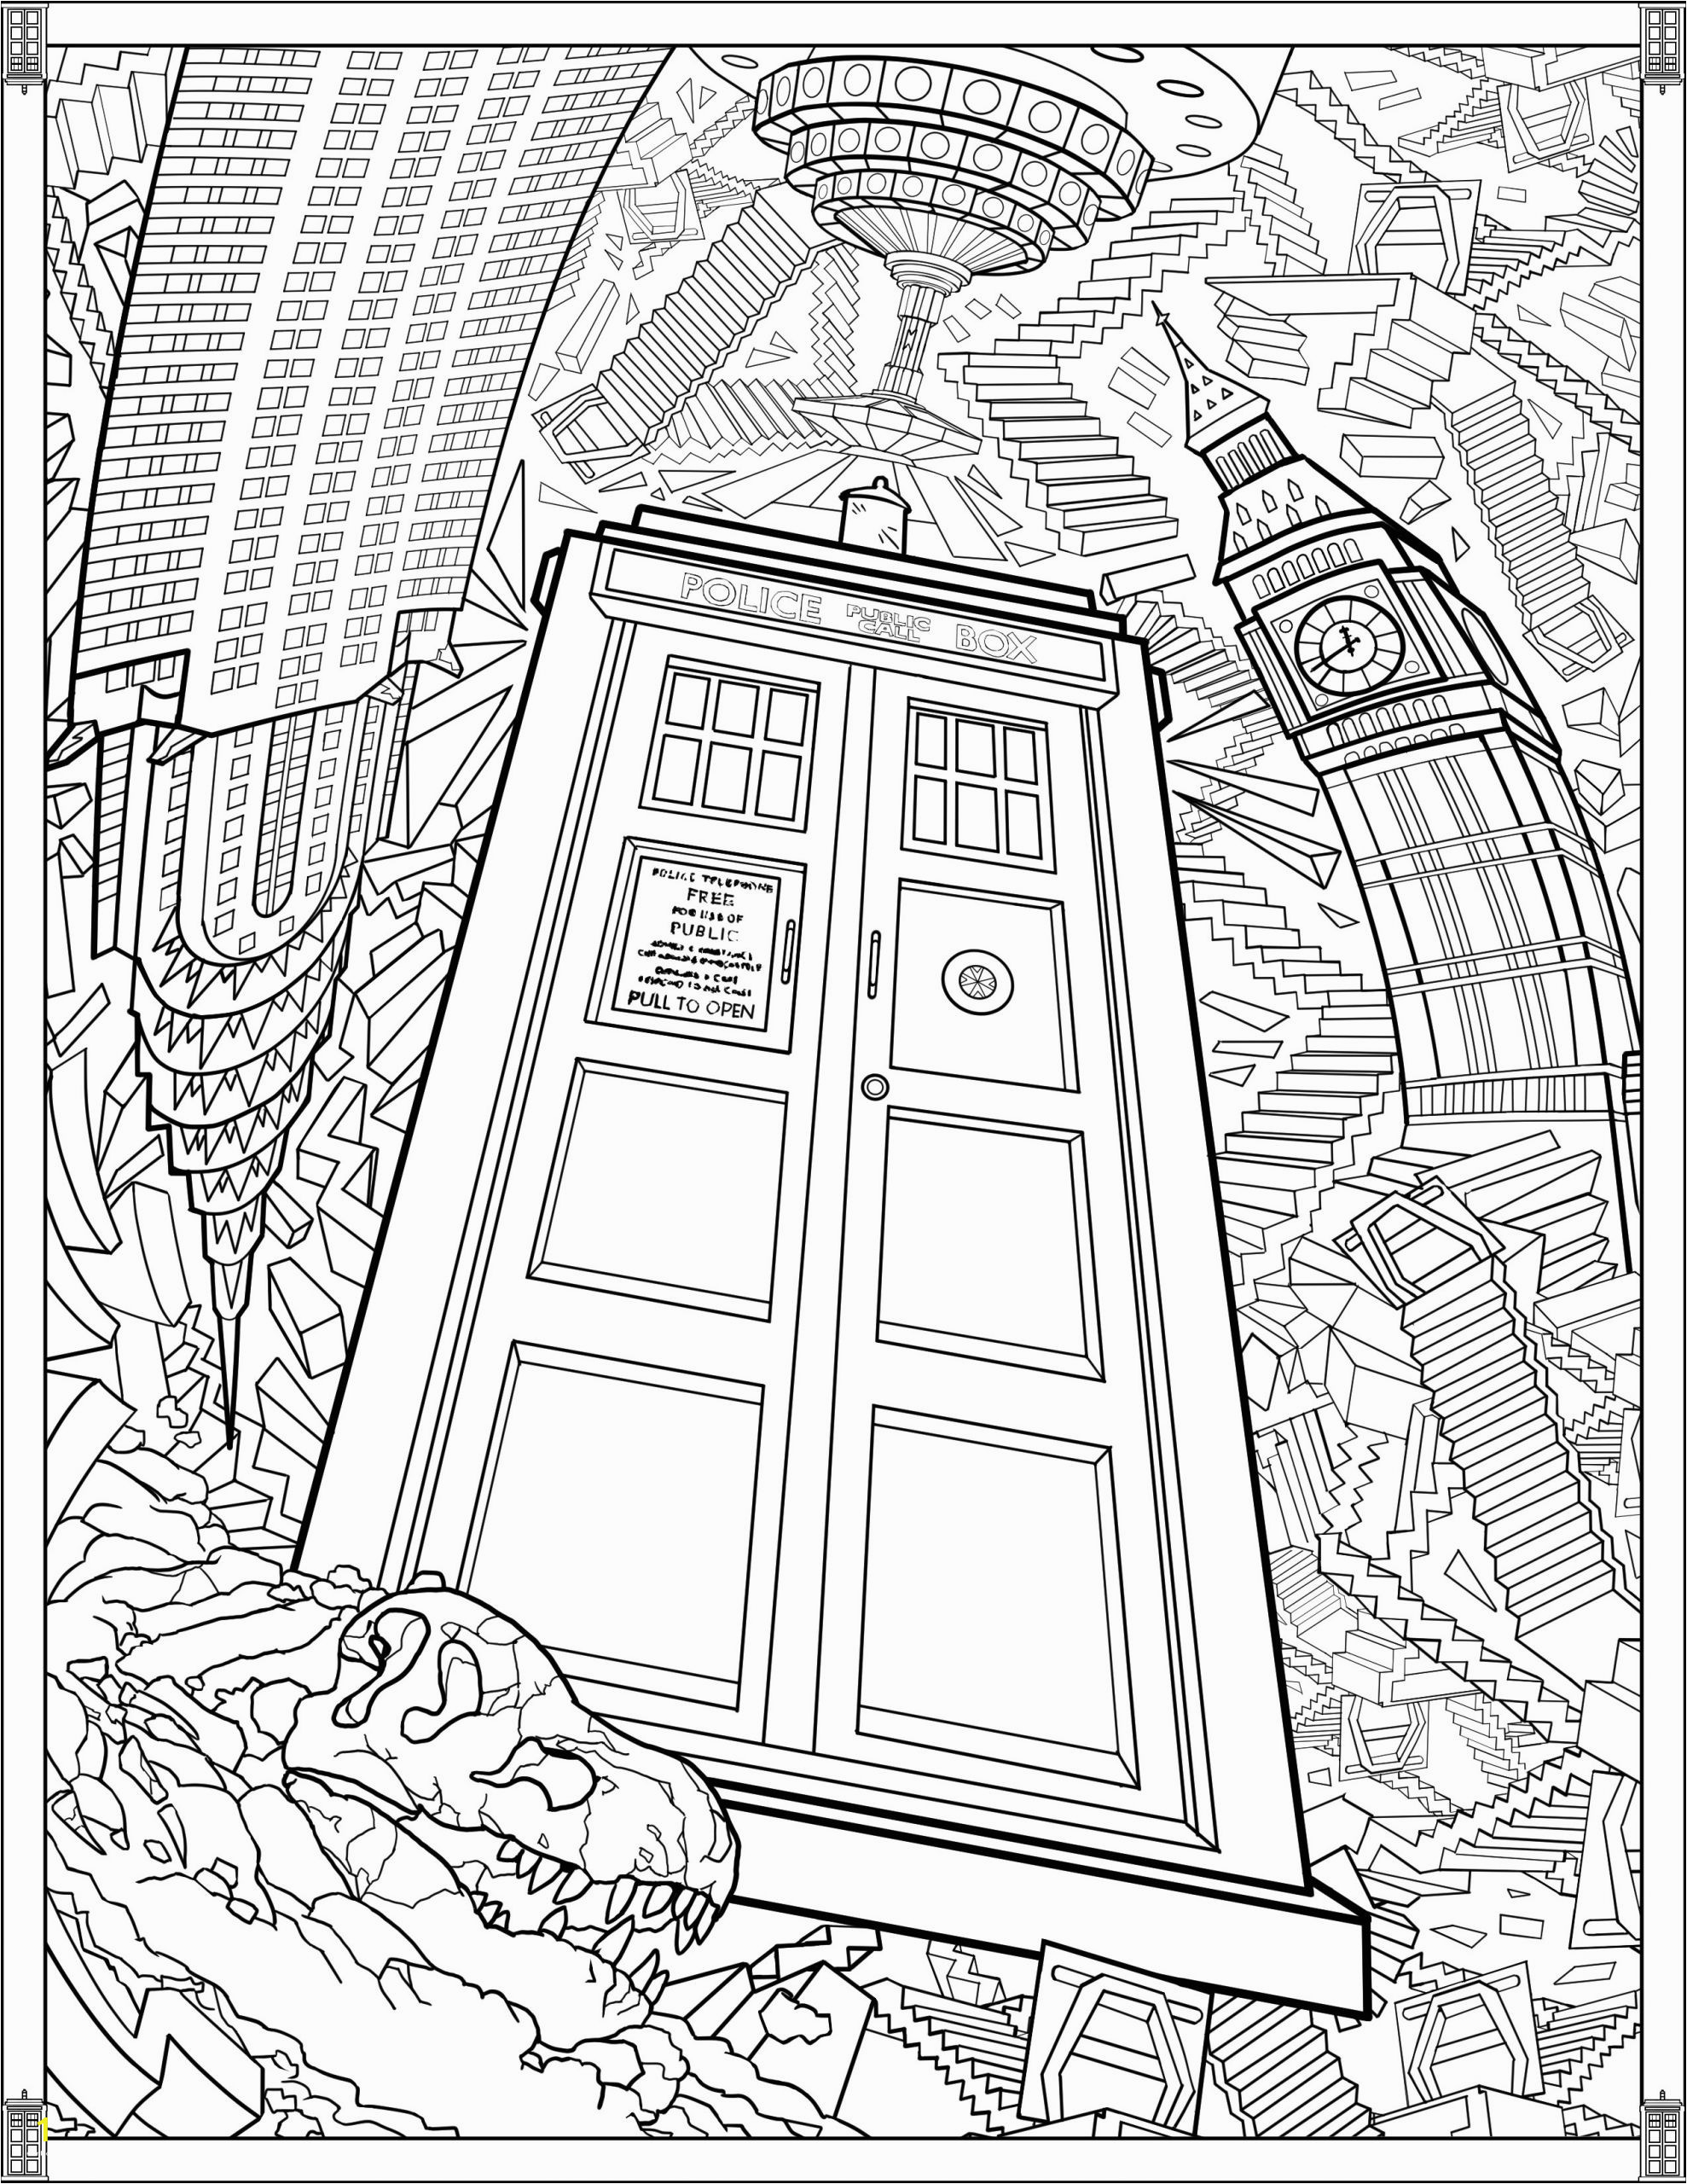 free printable 4th of july coloring pages for adults luxury doctor who wibbly wobbly timey wimey coloring pages of free printable 4th of july coloring pages for adults scaled